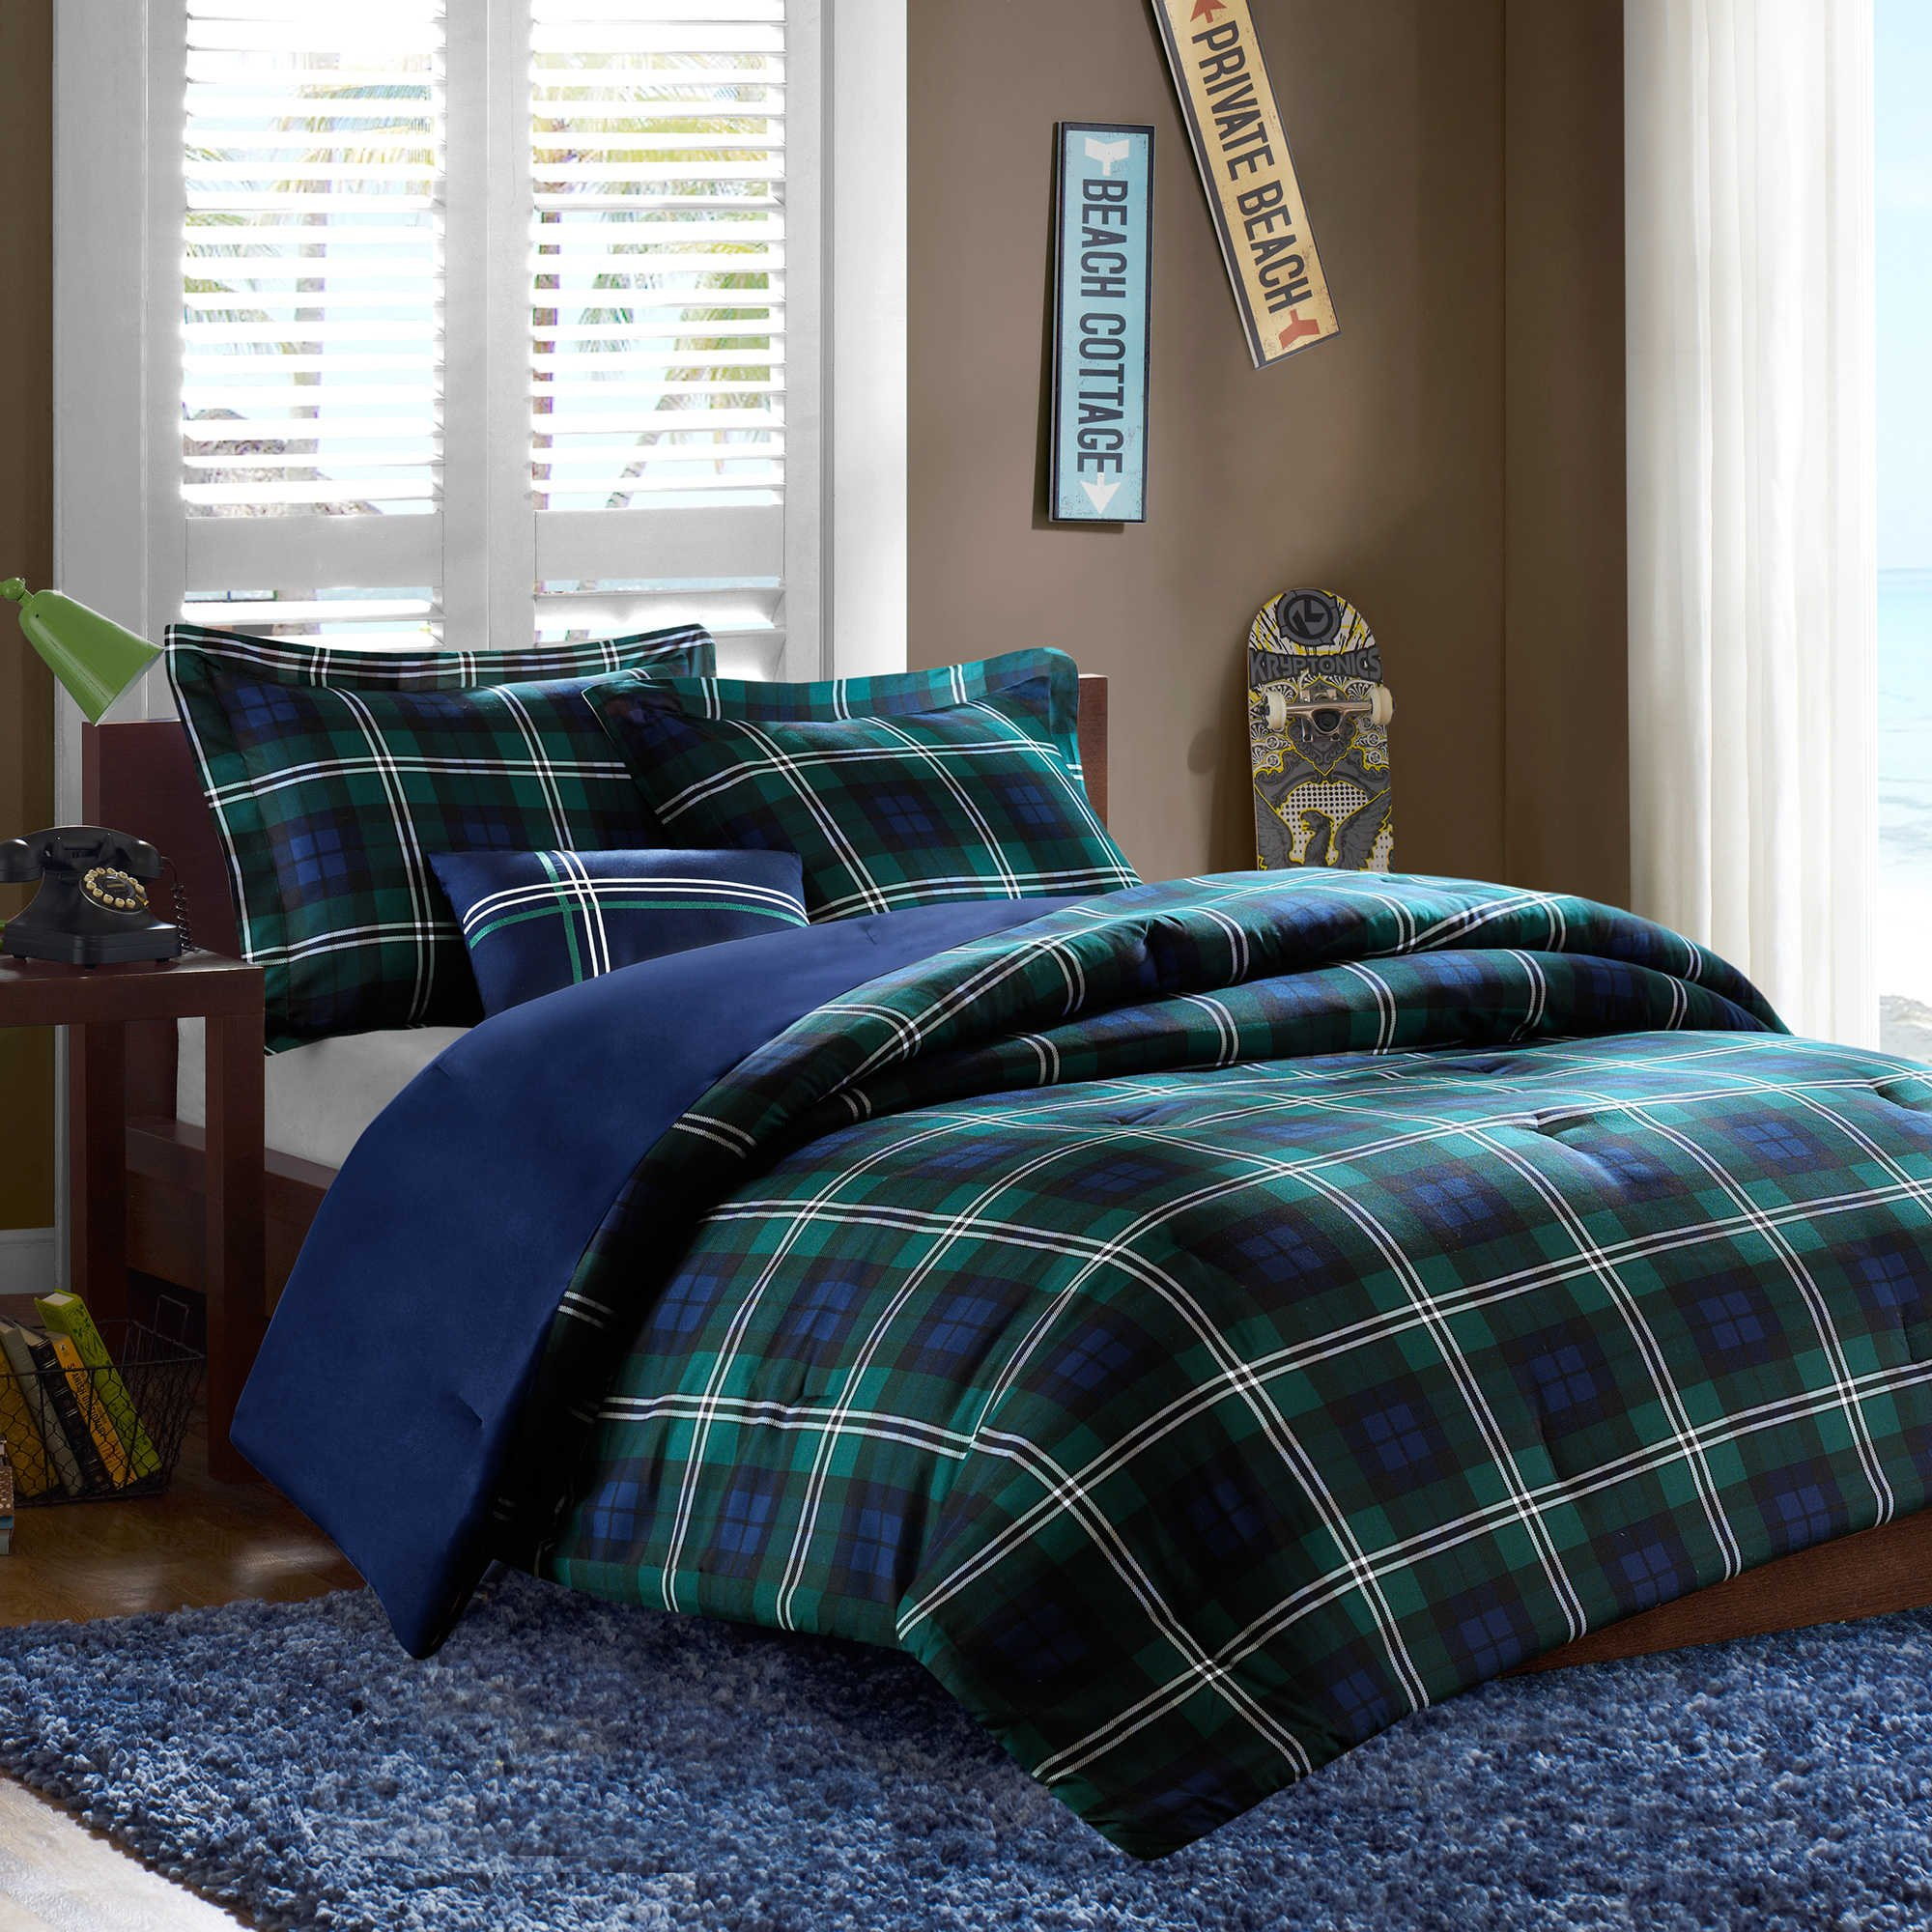 Brody Men's Plaid Blue Green Prints Boys Bedding TWIN/TWIN XL Comforter (3 Piece in a Bag)